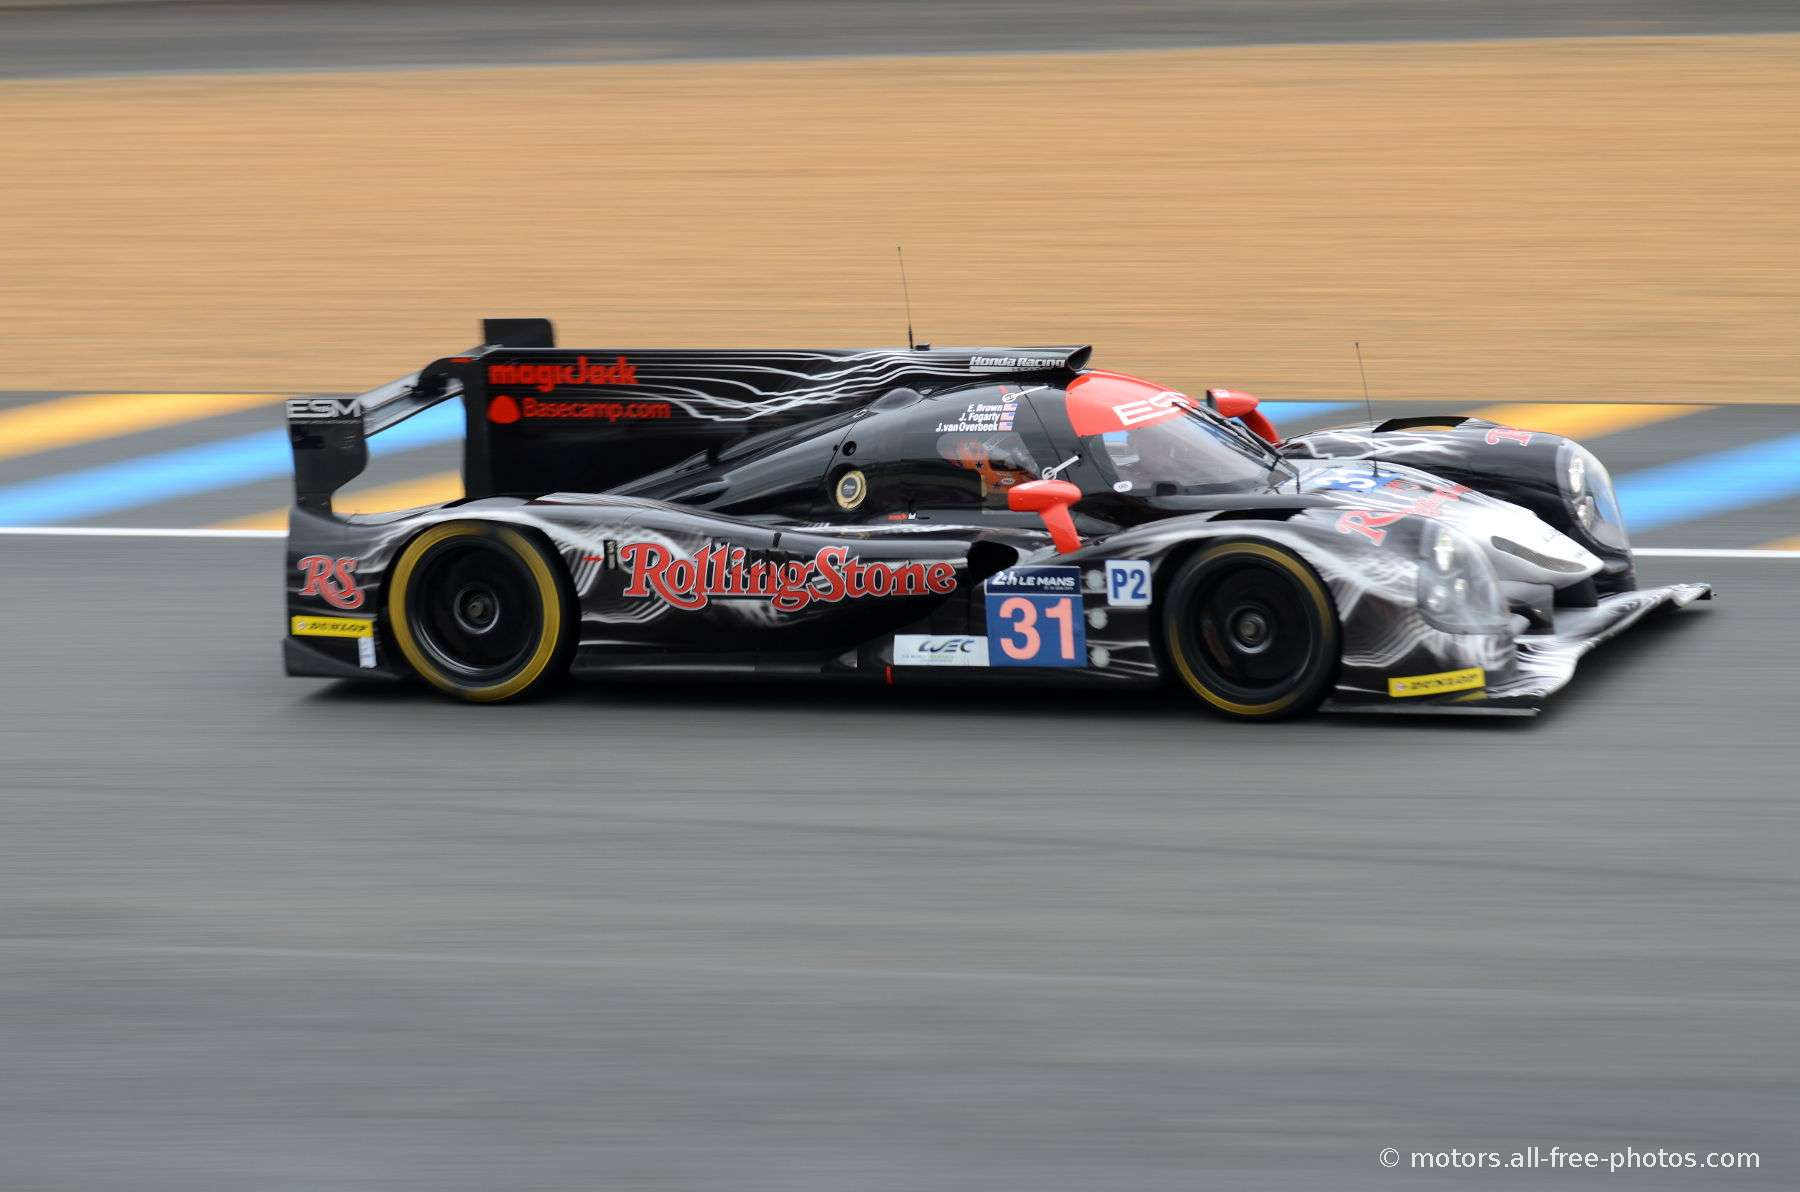 Ligier JS P2-HPD - Team Extreme Speed Motorsport